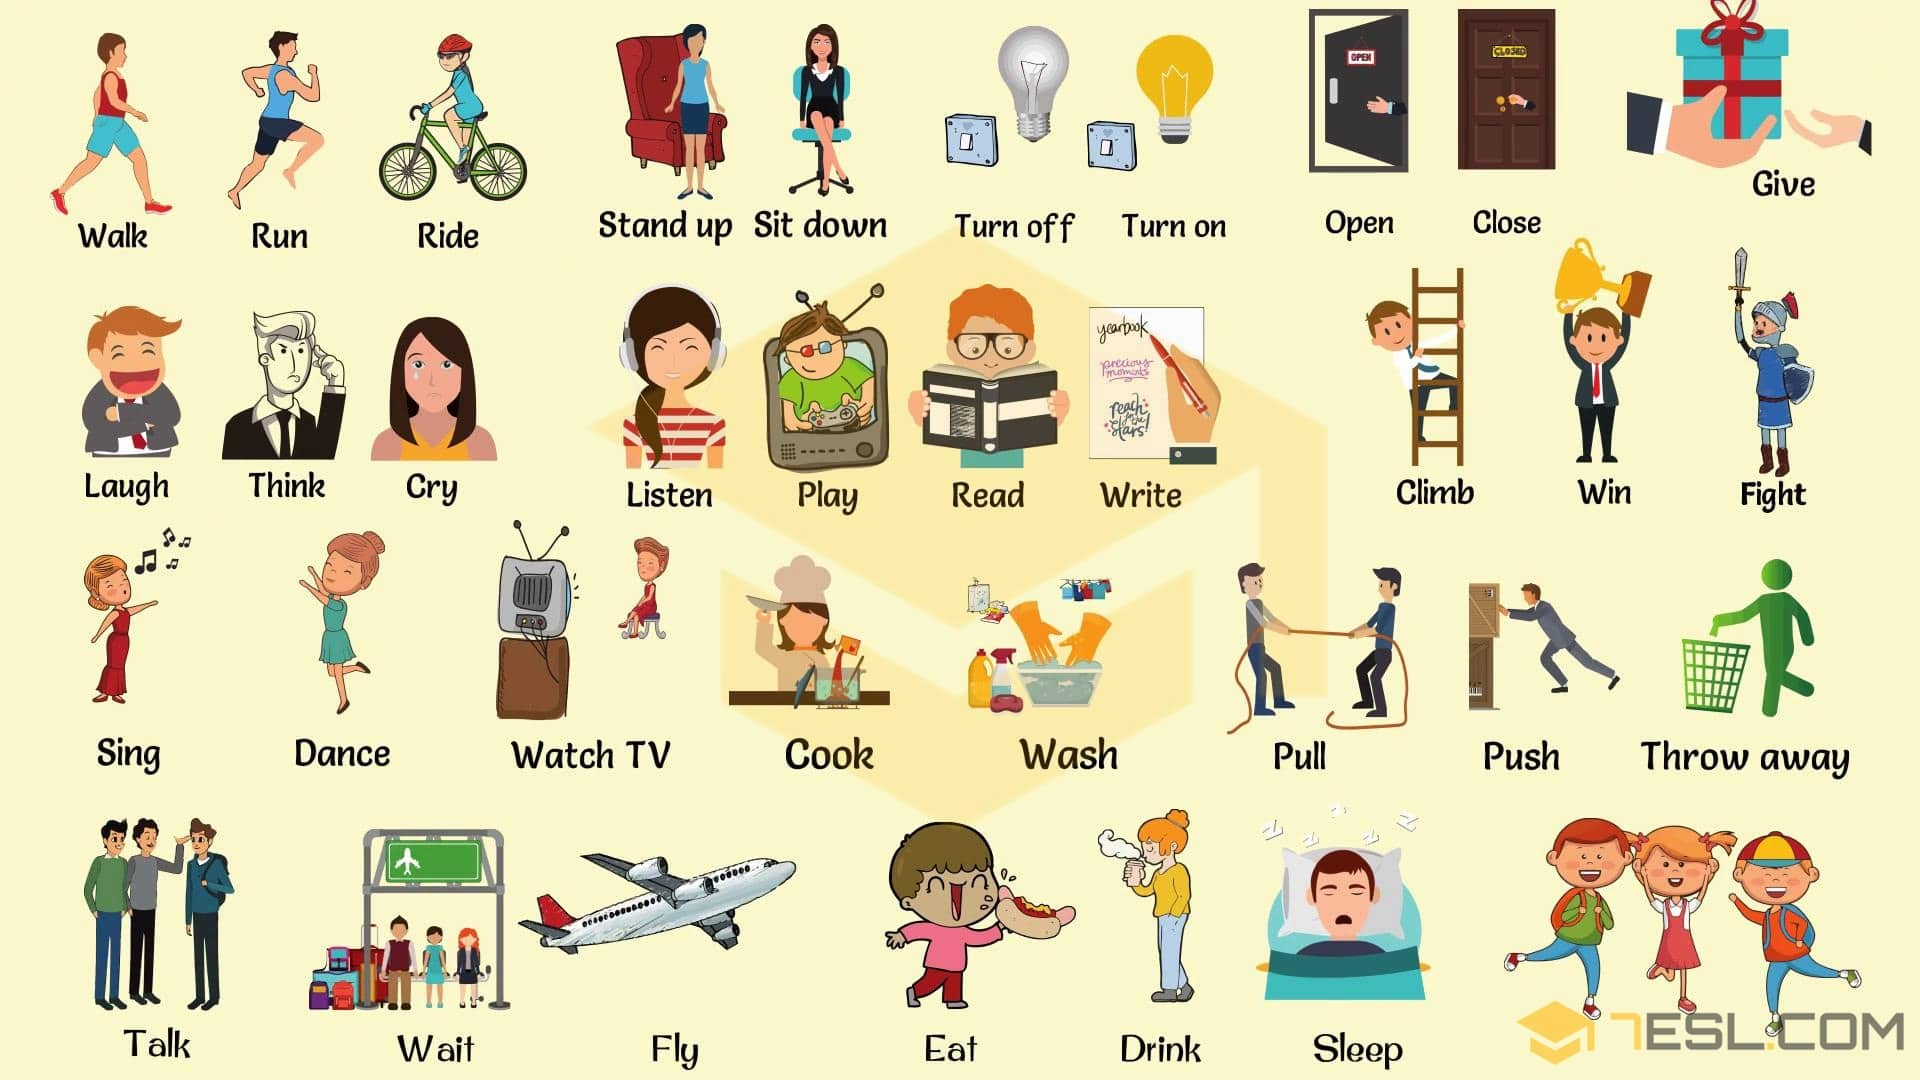 Action Verbs List Of 50 Common Action Verbs With Pictures